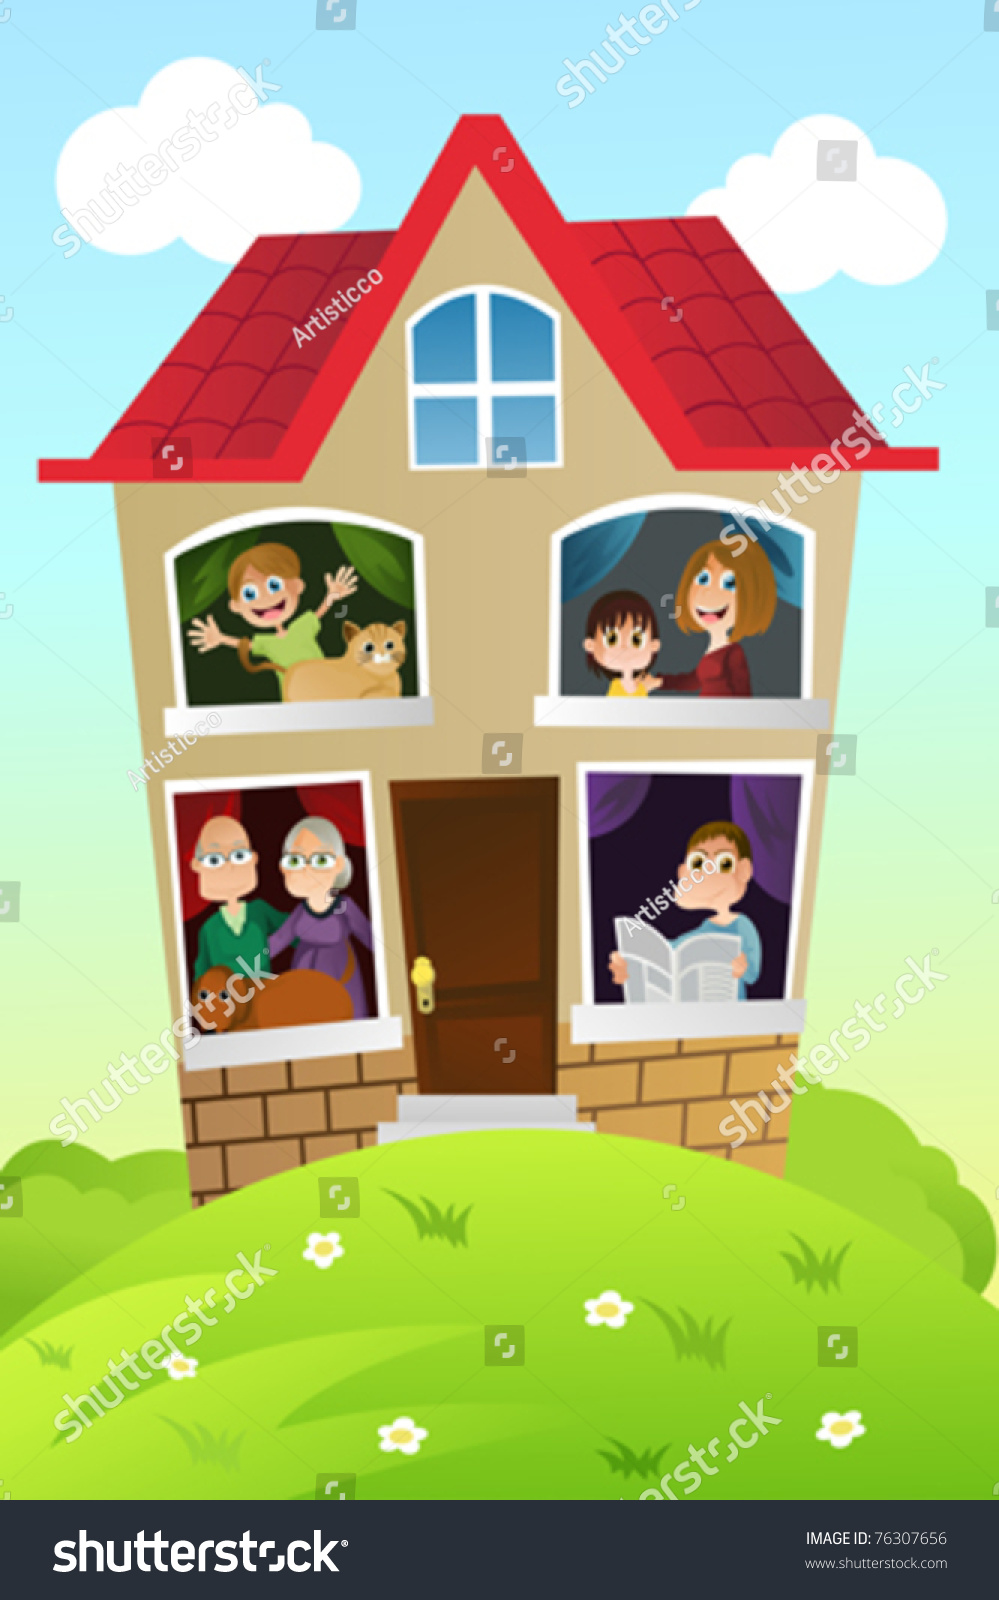 A Vector Illustration Of A Happy Family At Home - 76307656 ...